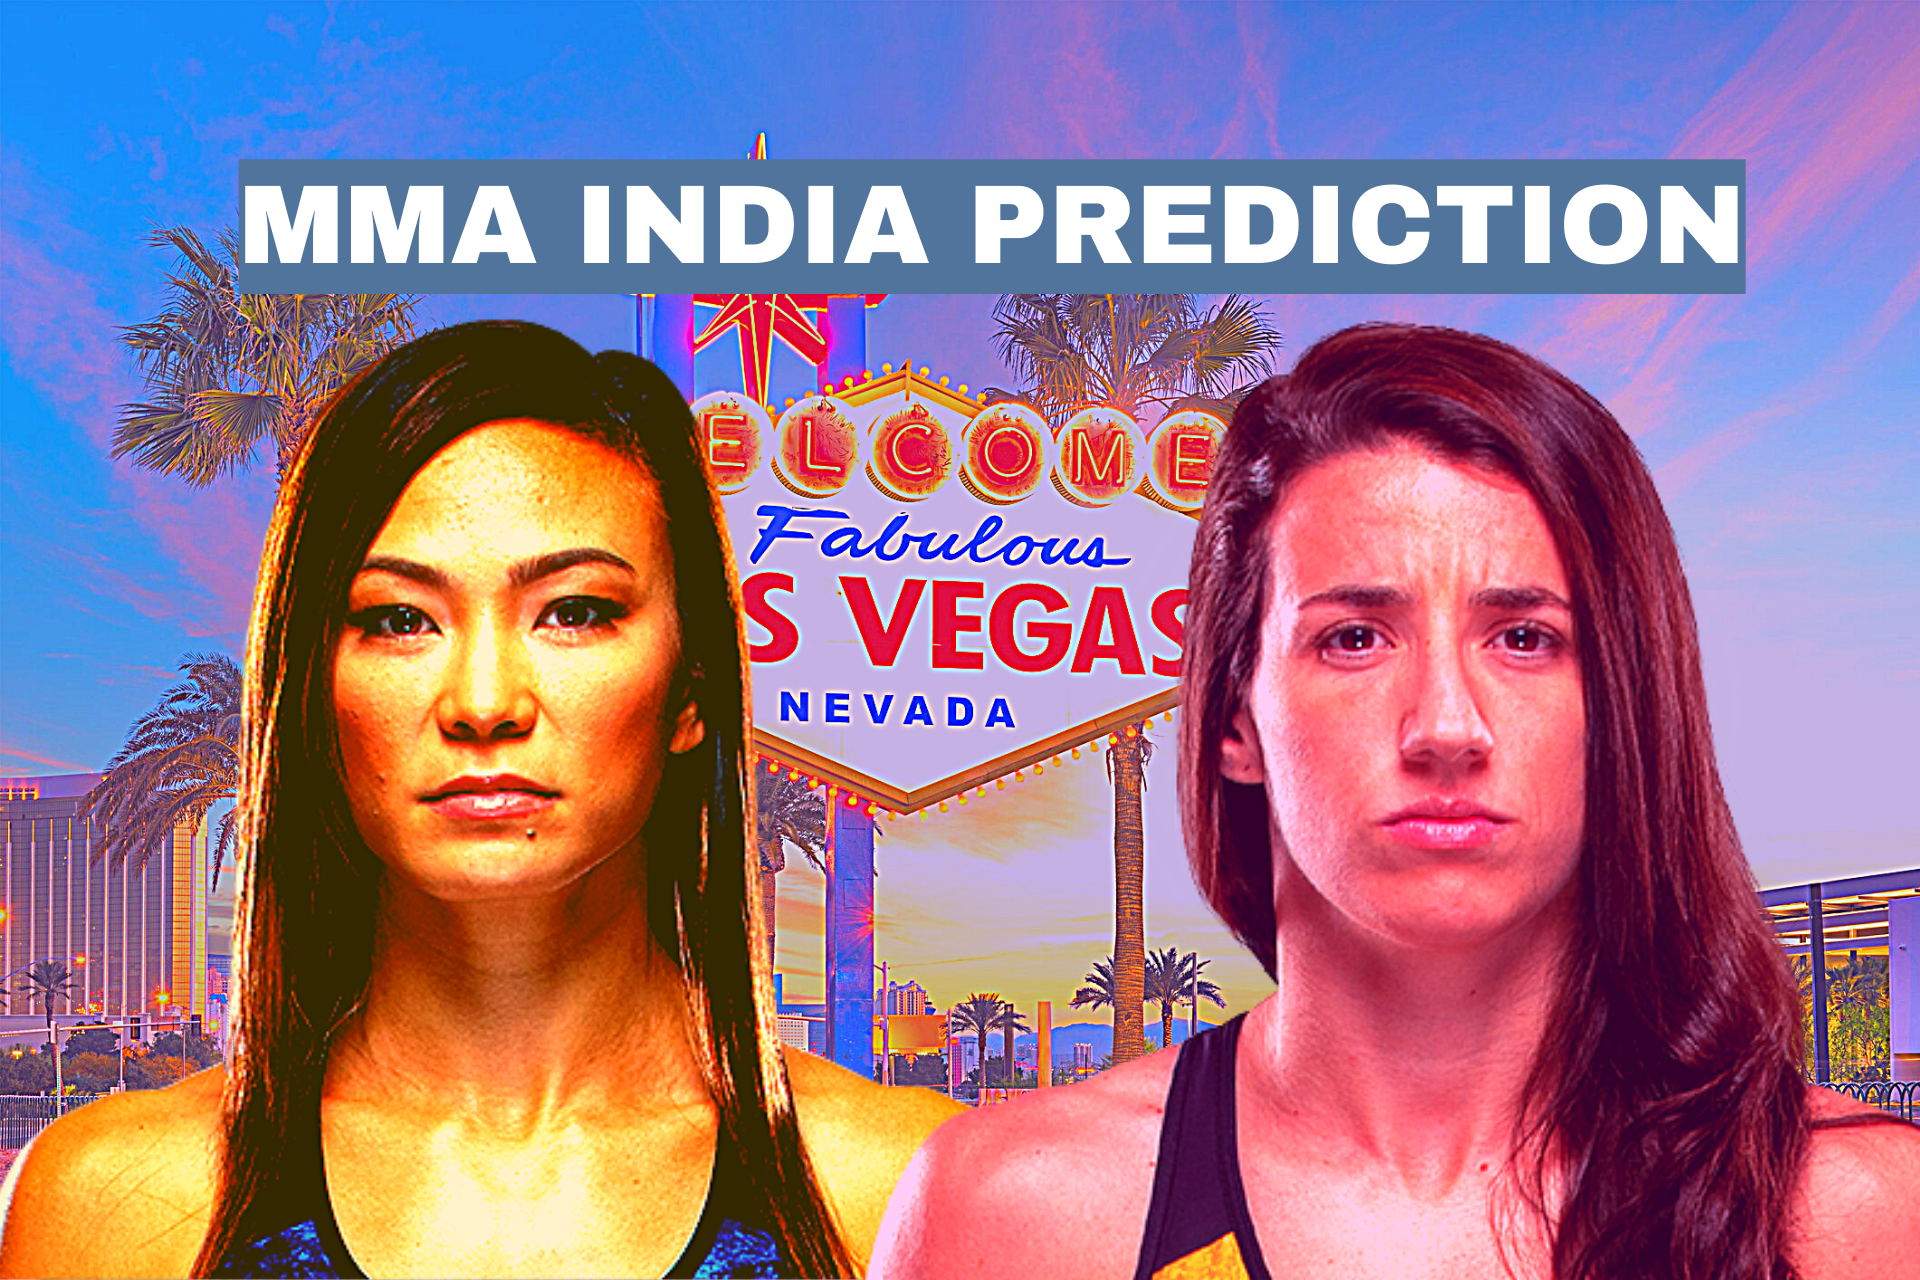 UFC Vegas 26: Waterson vs Rodriguez Betting Odds and Prediction - Waterson